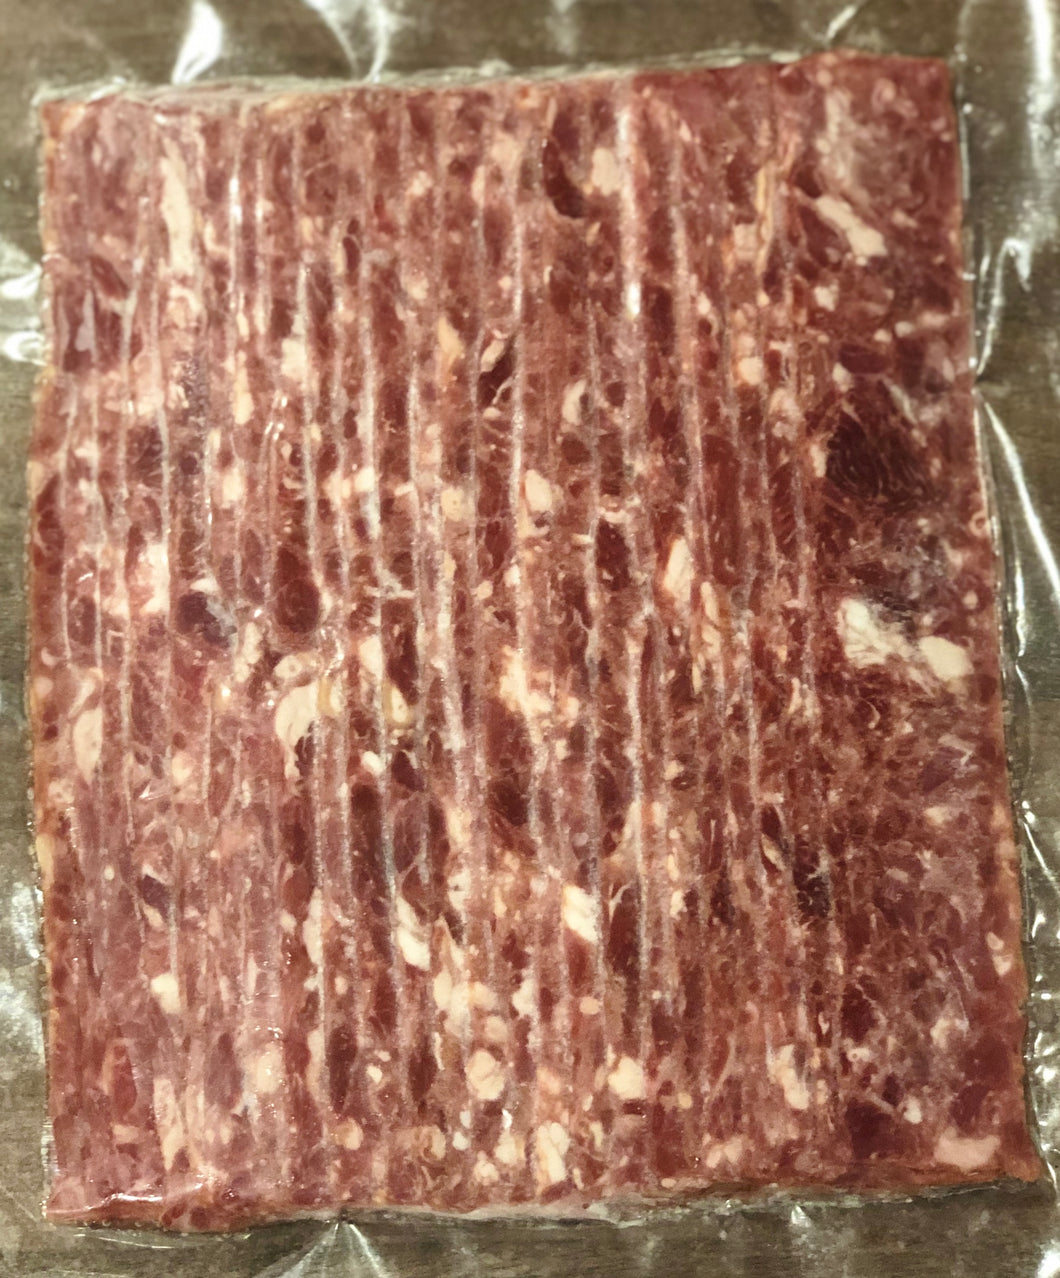 Frozen Beef Bacon Sliced - 250gms Pack